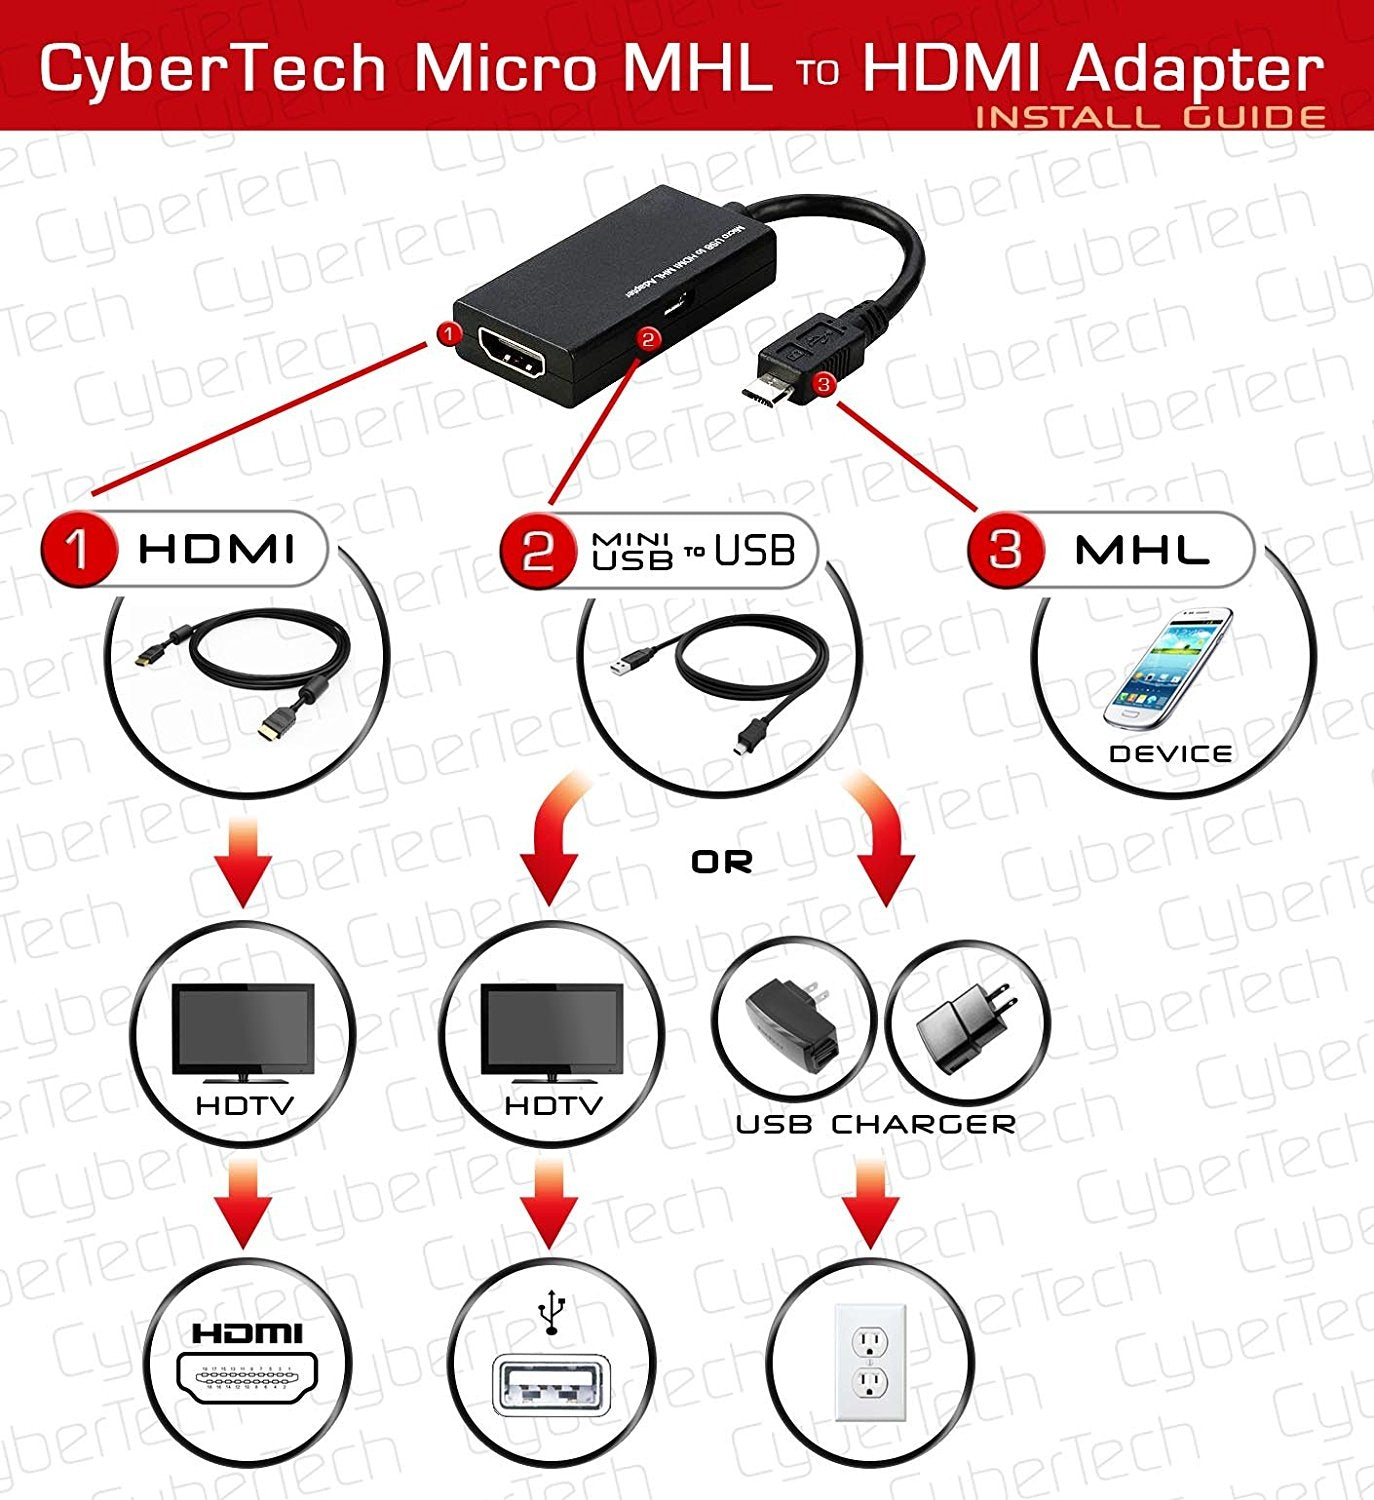 CyberTech MHL to HDMI Adapter for Samsung I997 Infuse 4G, Galaxy S2, HTC, etc.